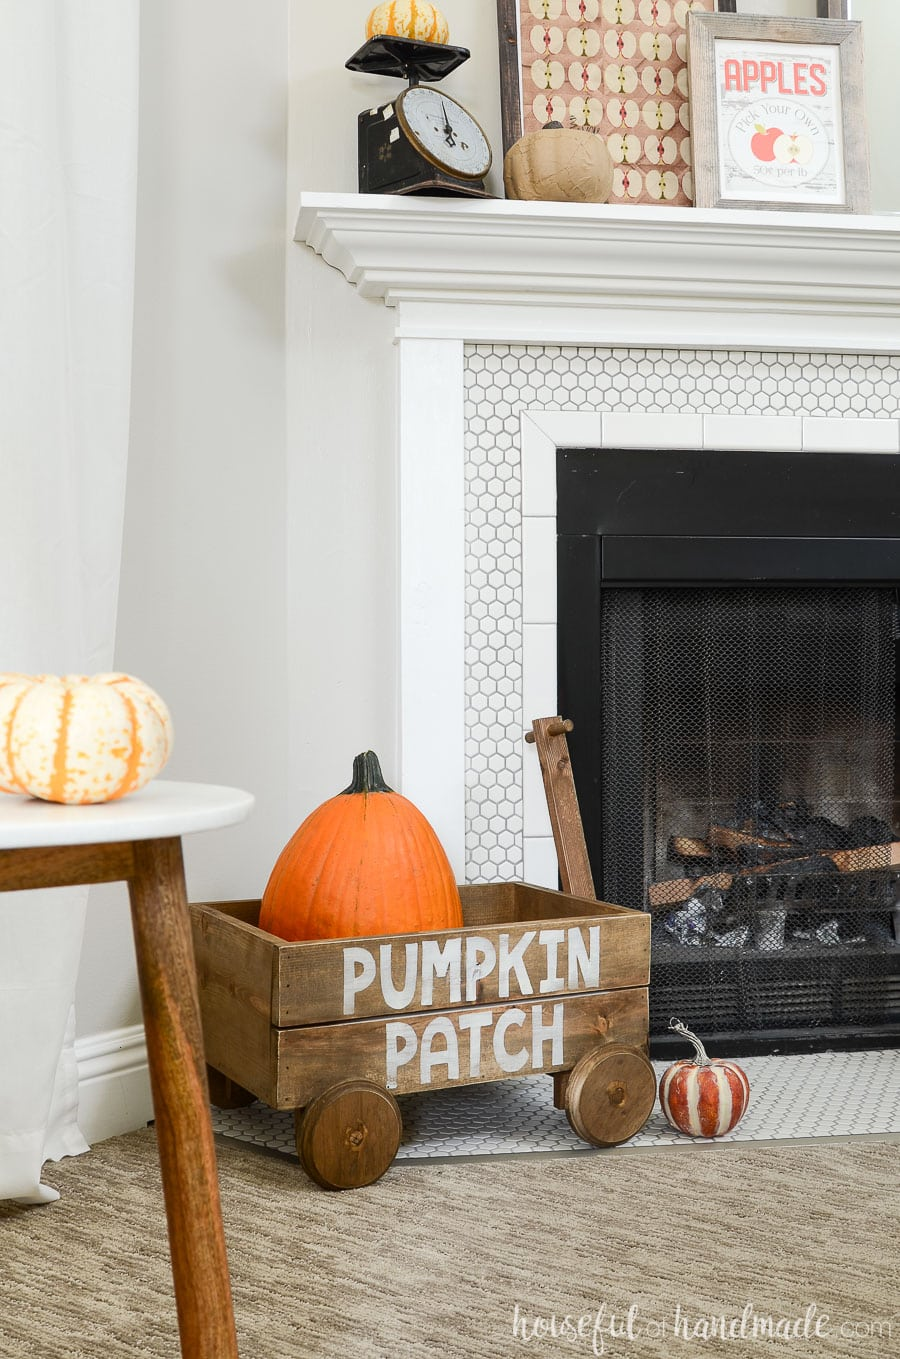 Decorative wood wagon with pumpkin patch words on the side holding a pumpkin on the fireplace hearth for fall decor.